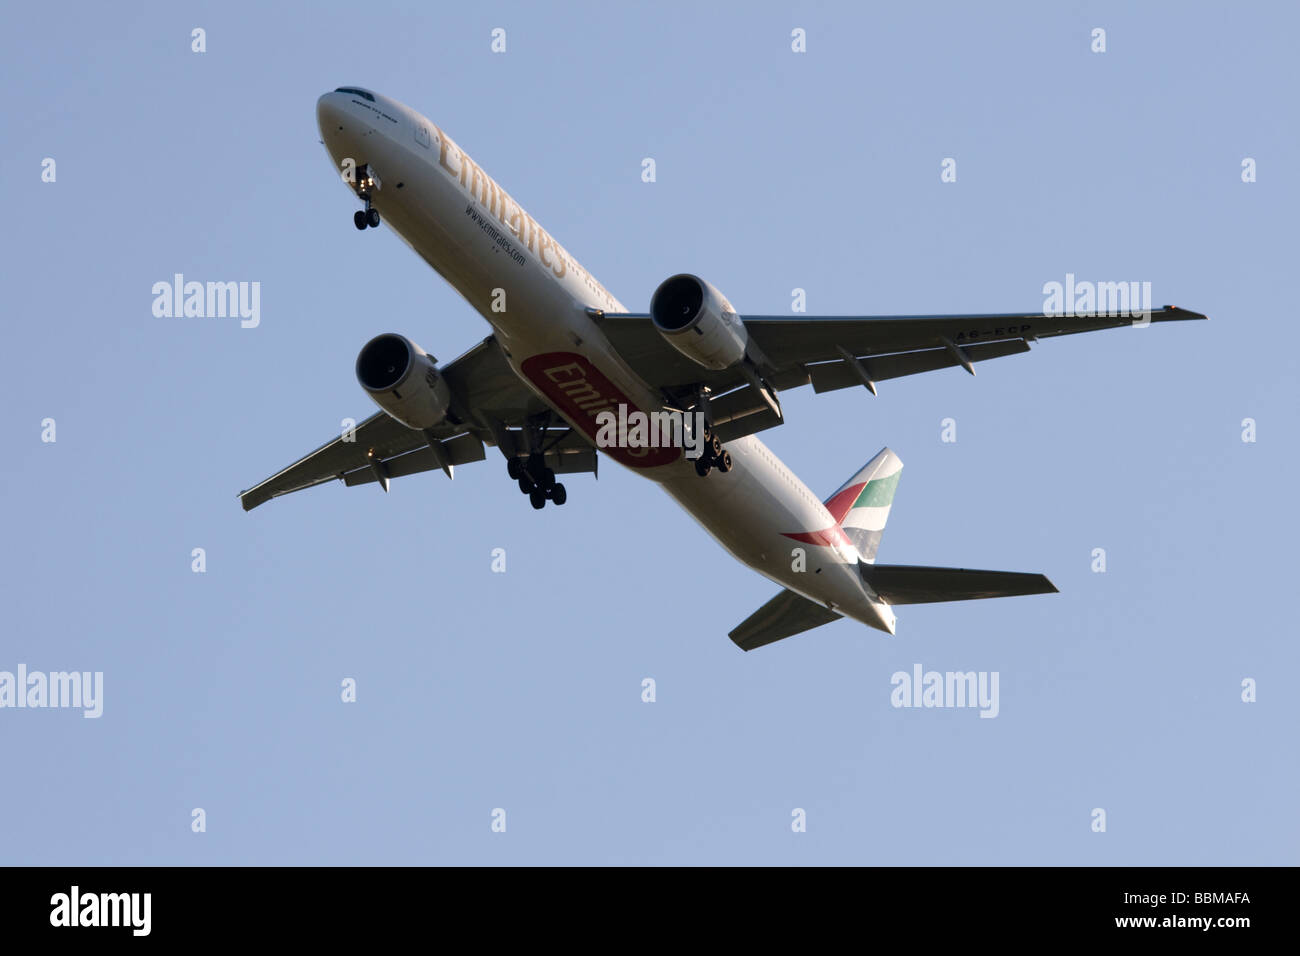 Commercial jet airliner, Emirates Boeing 777-36N/ER - Stock Image